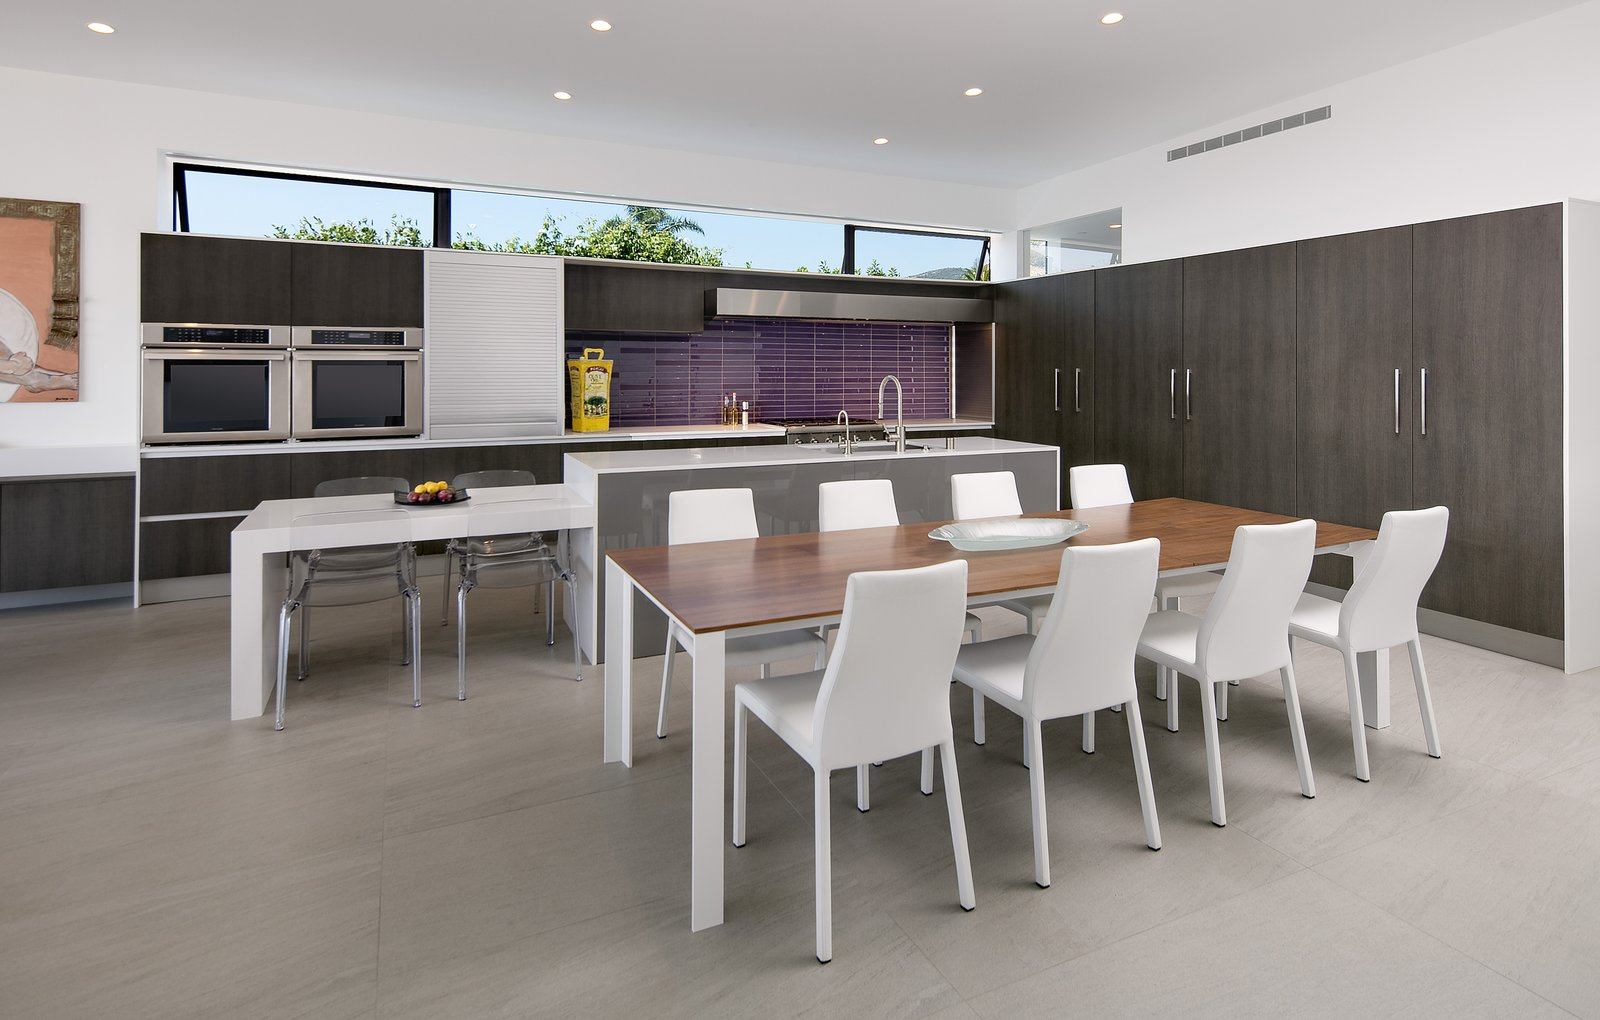 Purple mosaic tile adds a pop of color the the minimal kitchen.